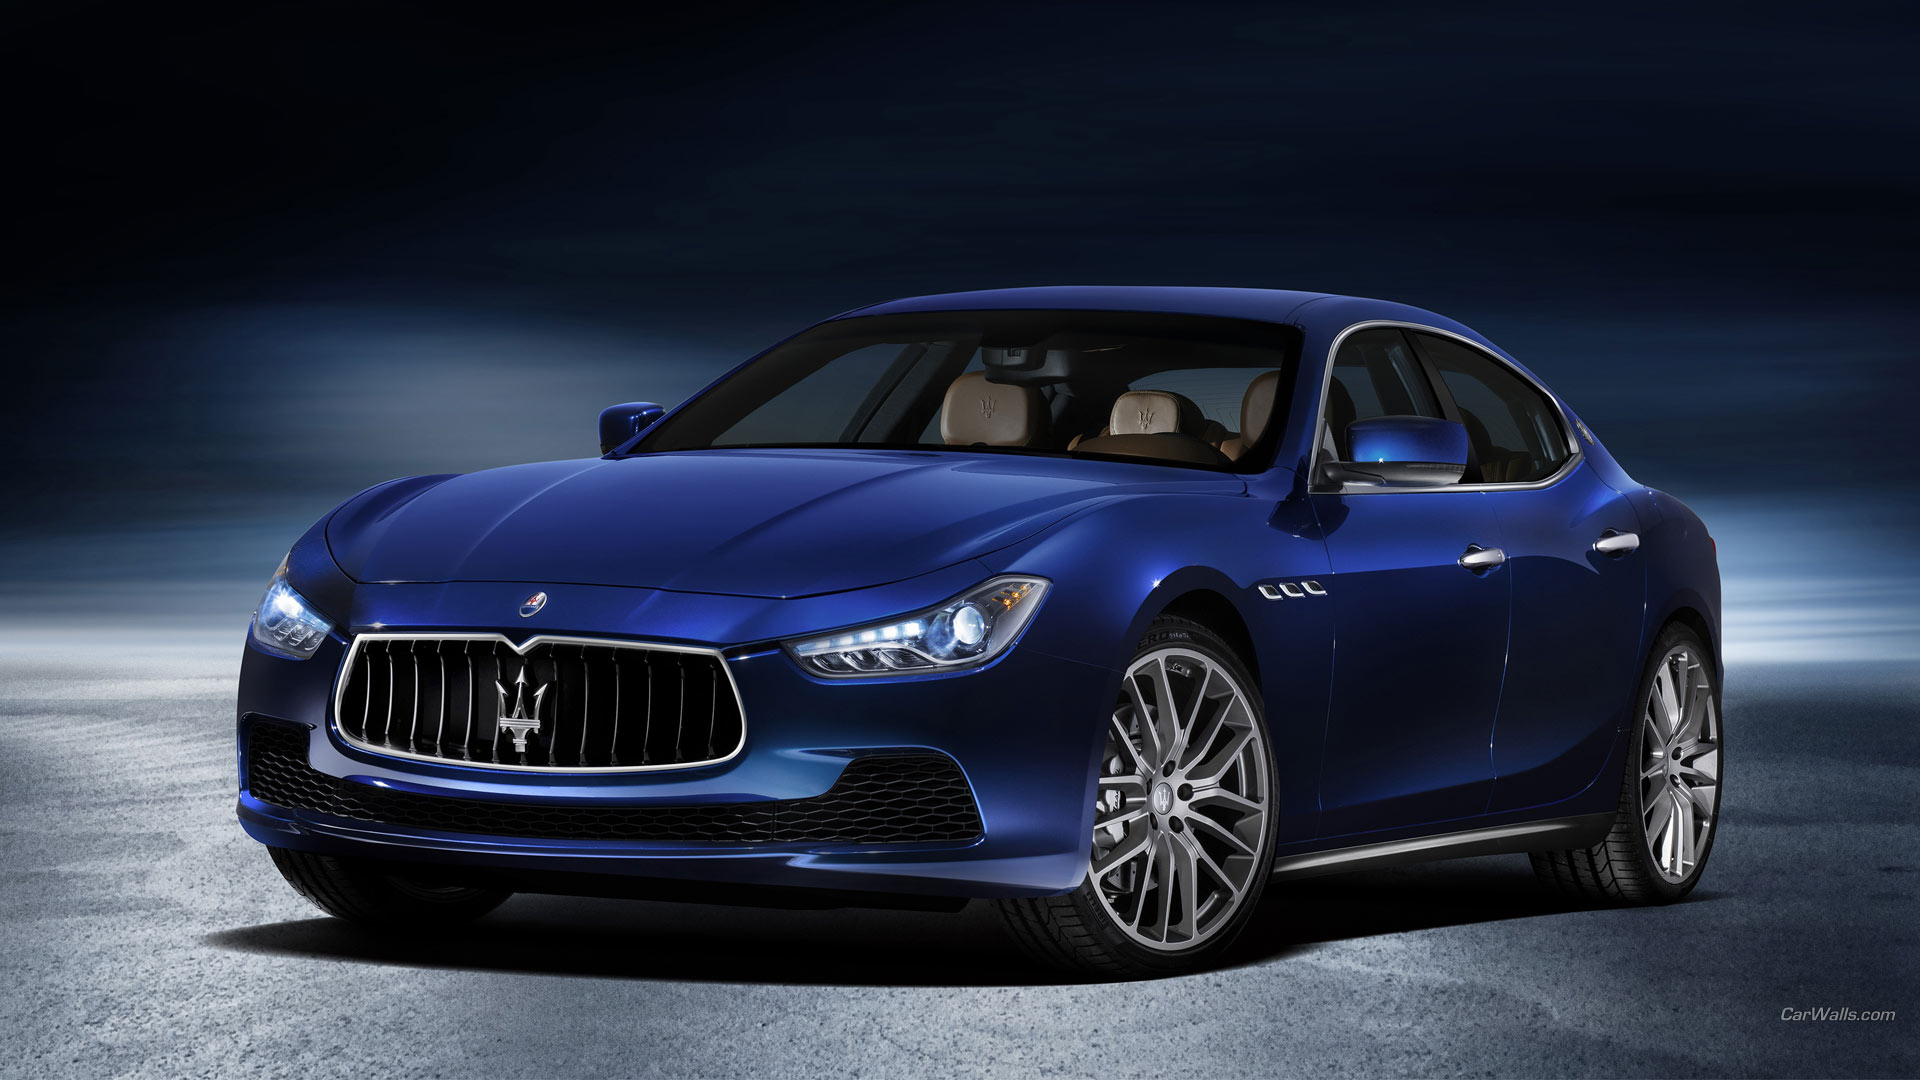 2014 Maserati Ghibli Computer Wallpapers, Desktop ...